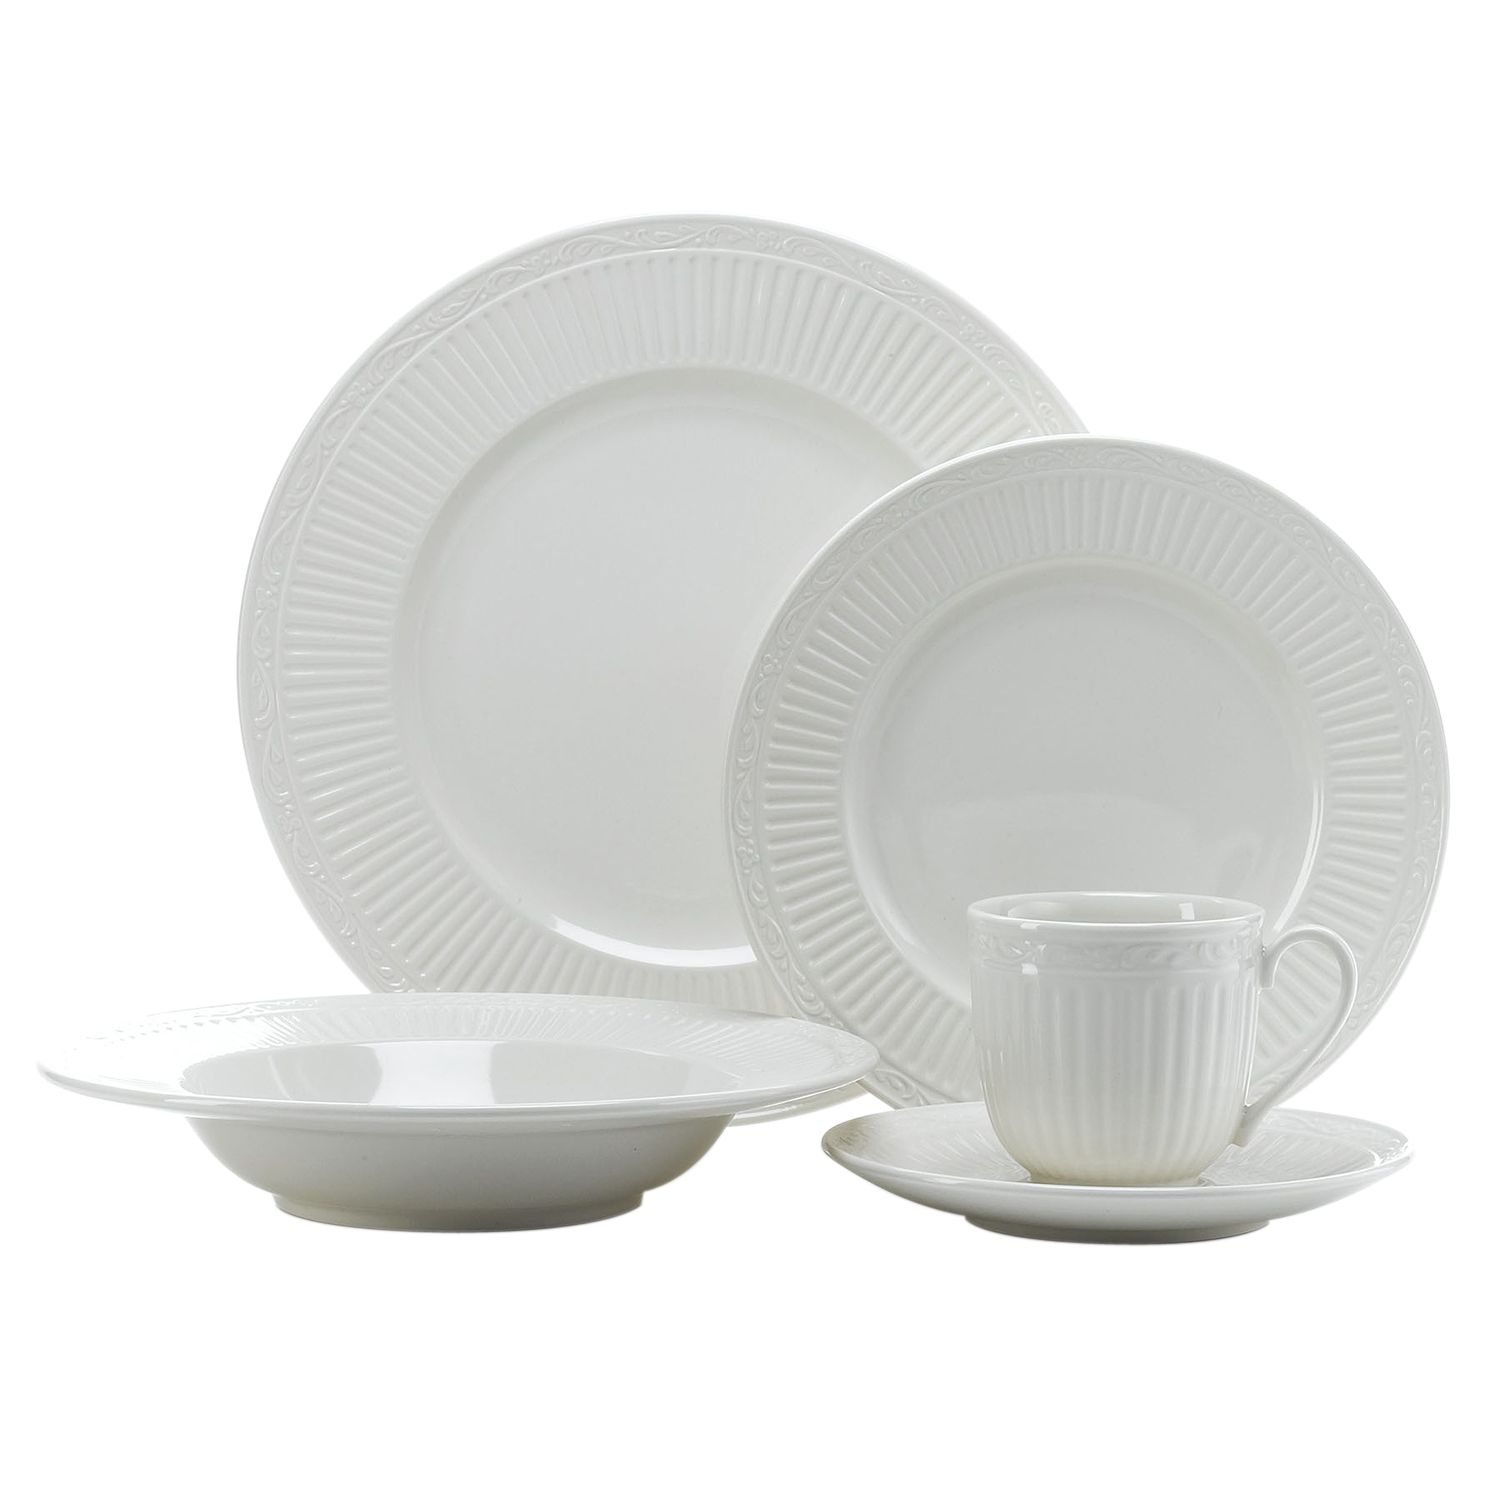 sc 1 st  Kohlu0027s & Mikasa Italian Countryside 5-pc. Place Setting